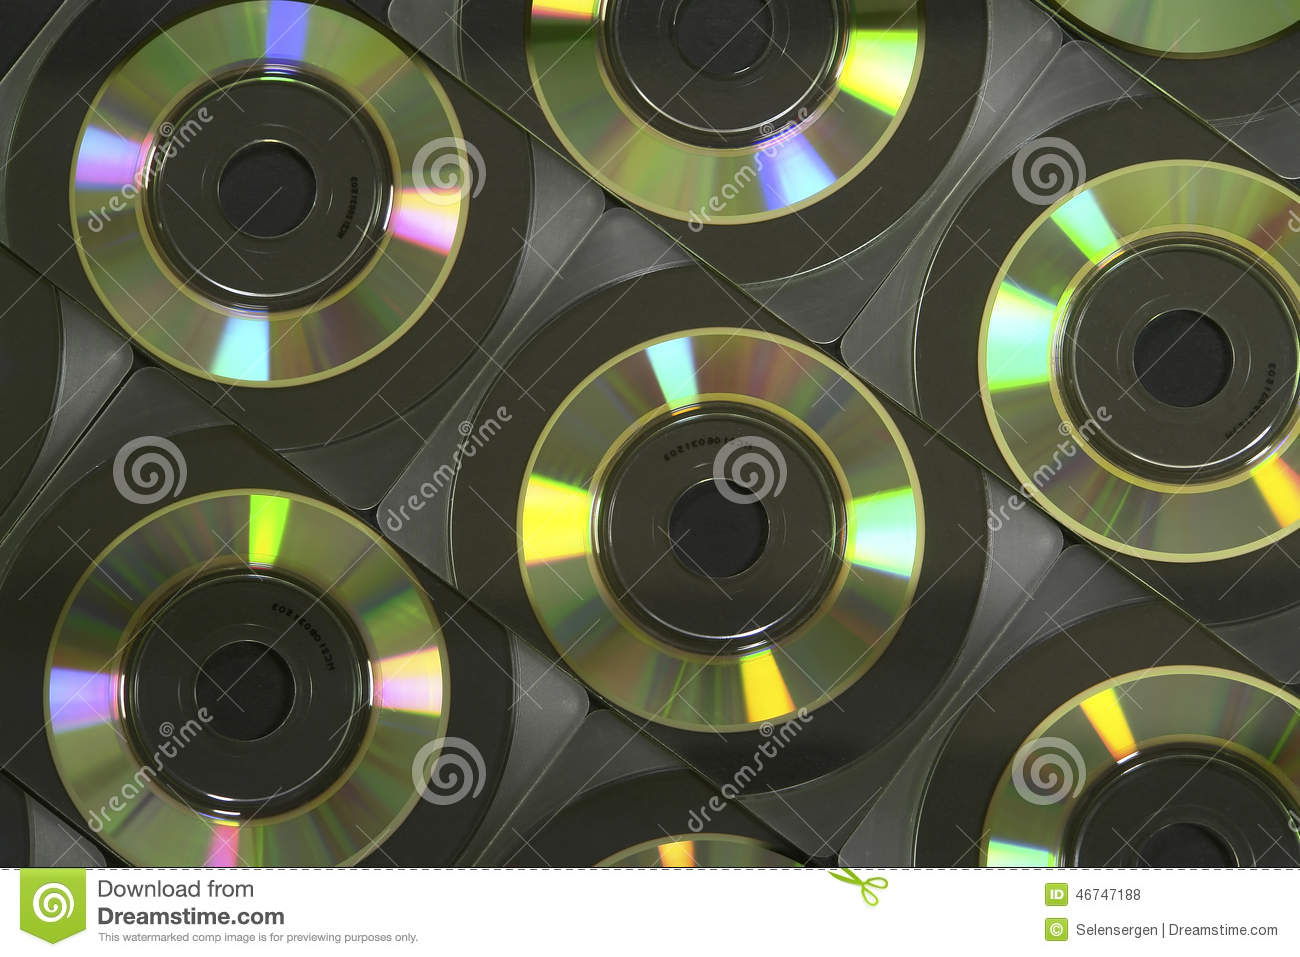 Business Card CD-Rom stock photo. Image of software, anguler - 46747188